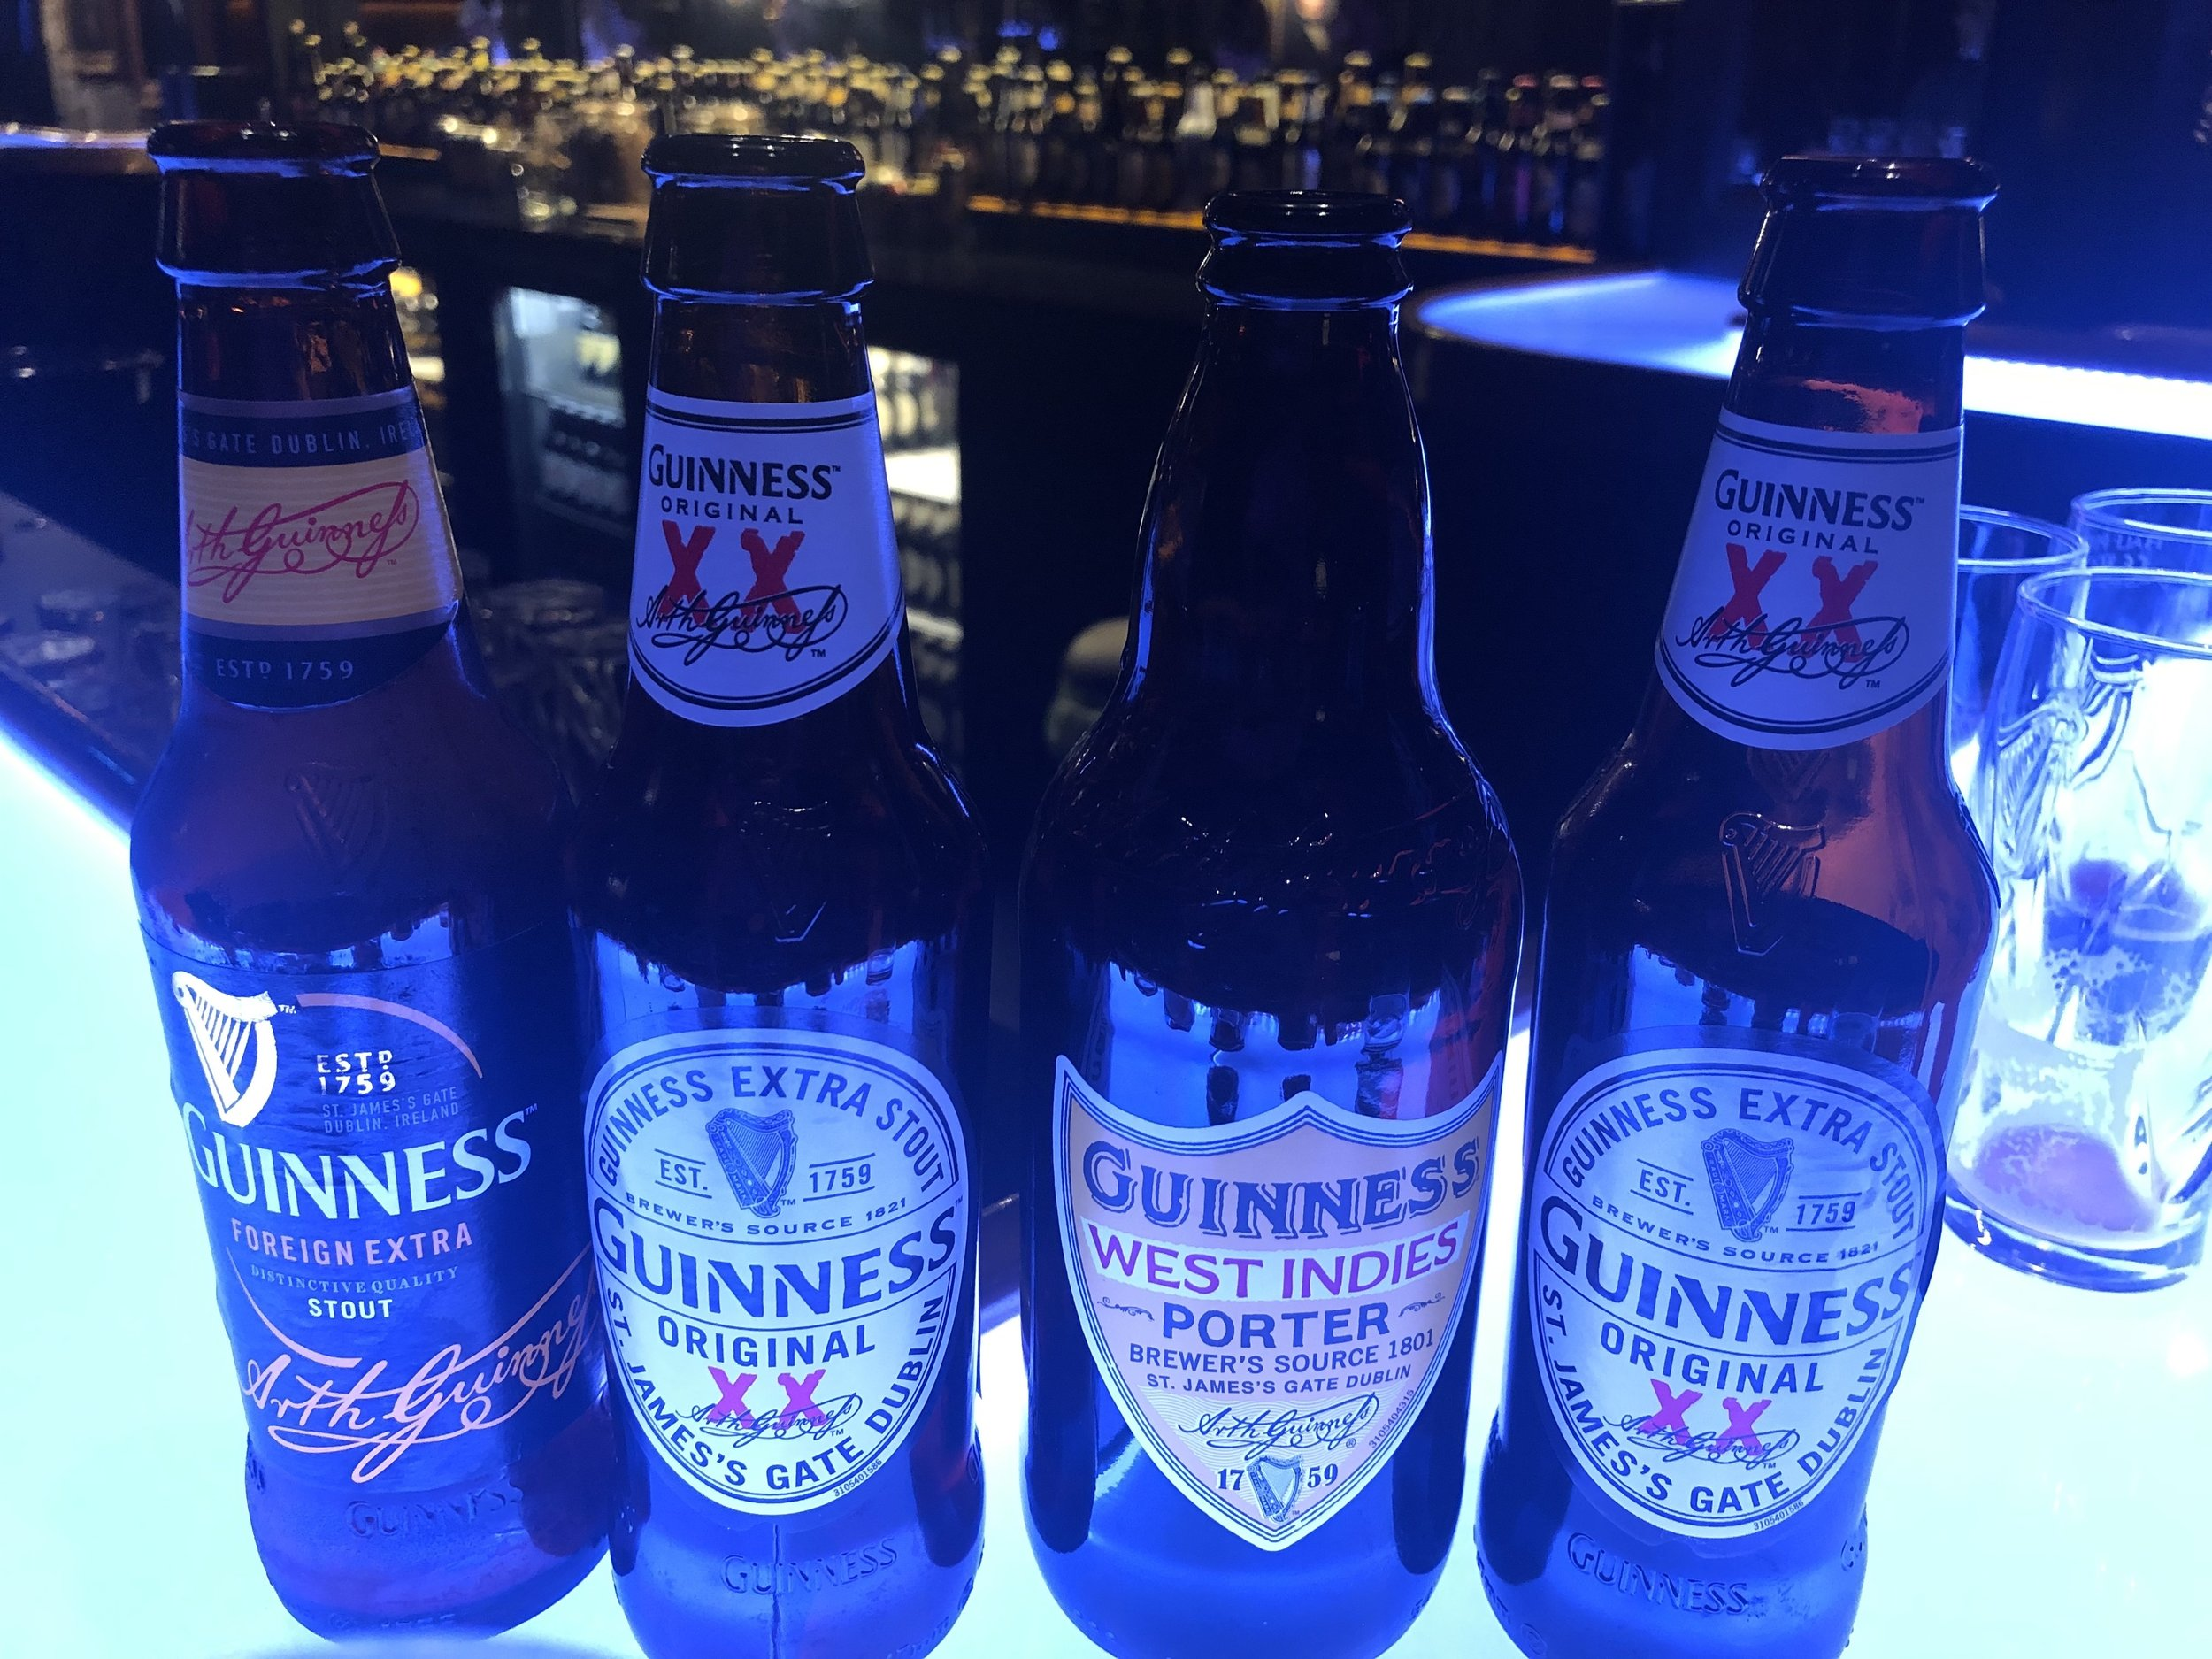 Wanderlust-Travel-small-group-tour-theme-beer-Guinness